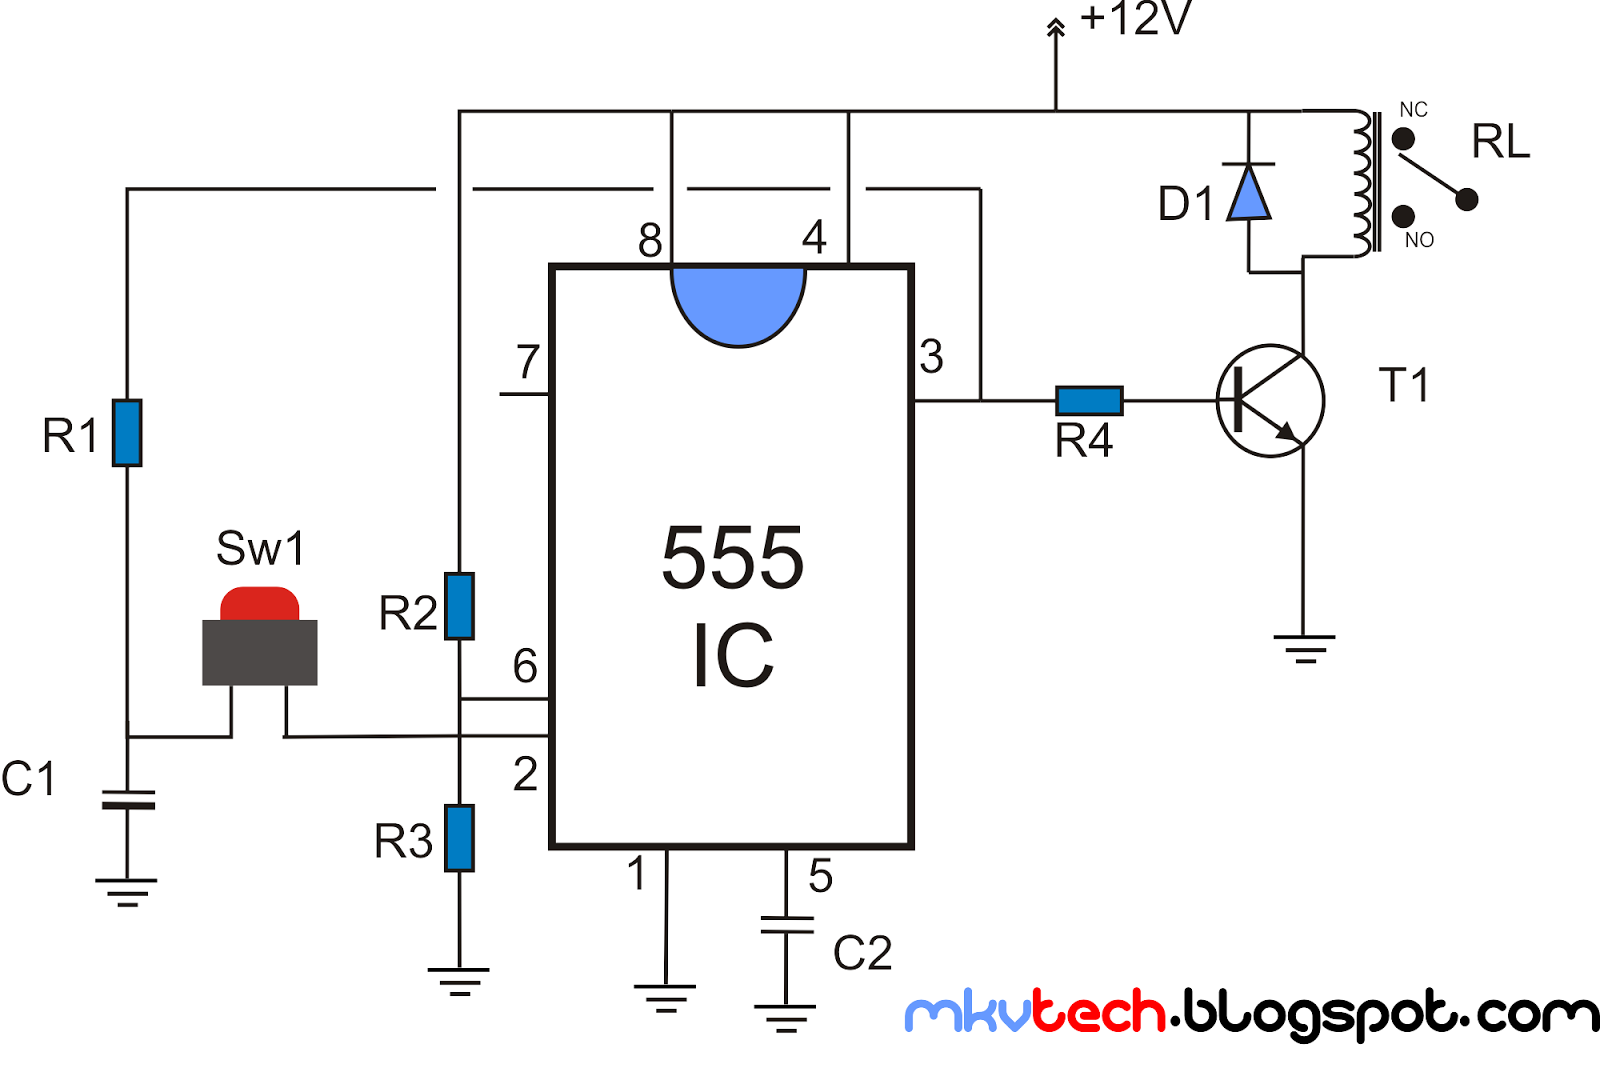 latching relay using 555 timer latching circuit with reset button relay circuit diagram [ 1600 x 1068 Pixel ]